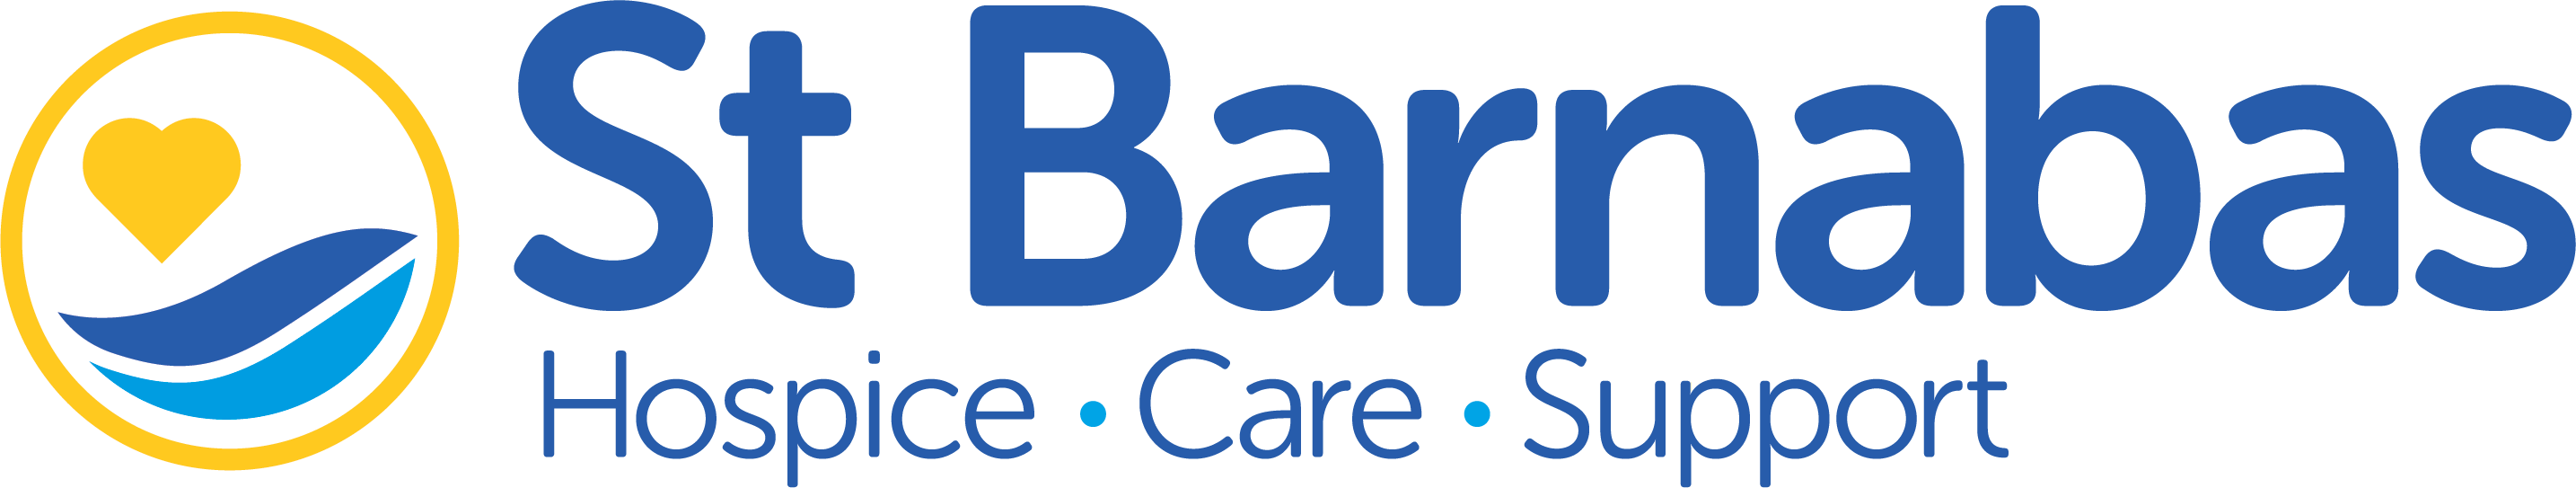 Meet the team behind your local hospice St Barnabas